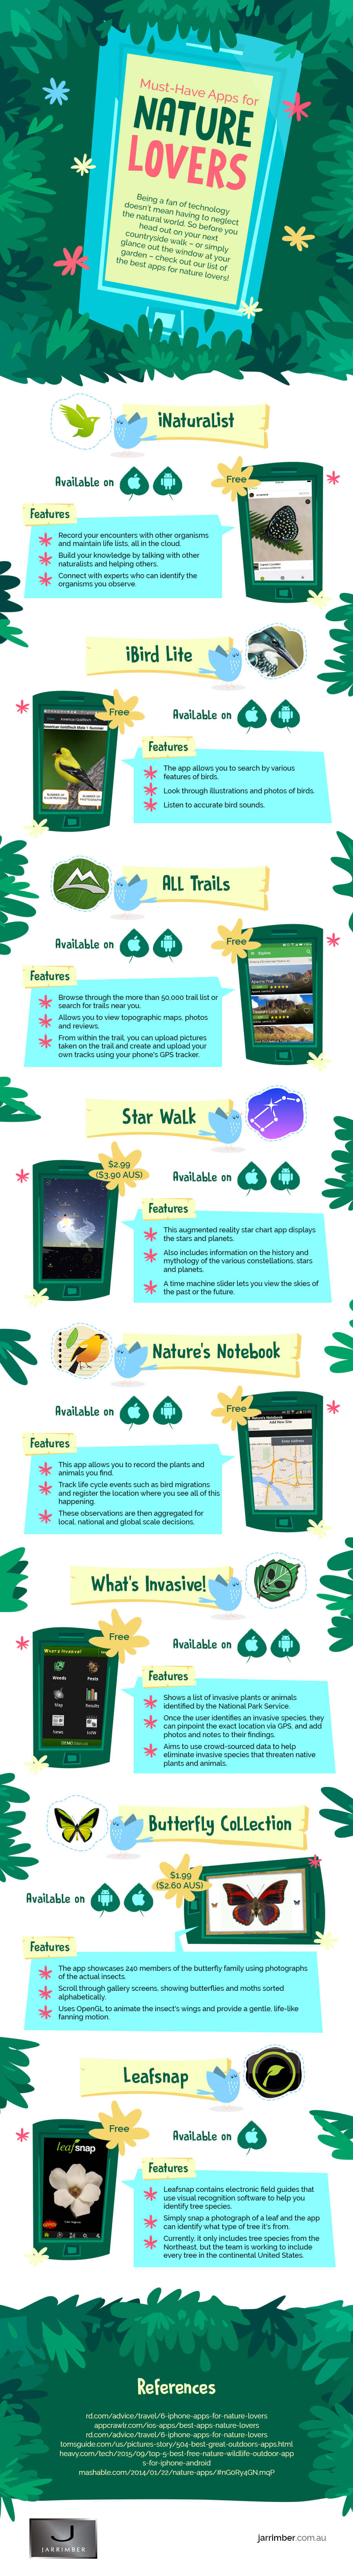 musthave-apps-for-nature-lovers-infographic-plaza